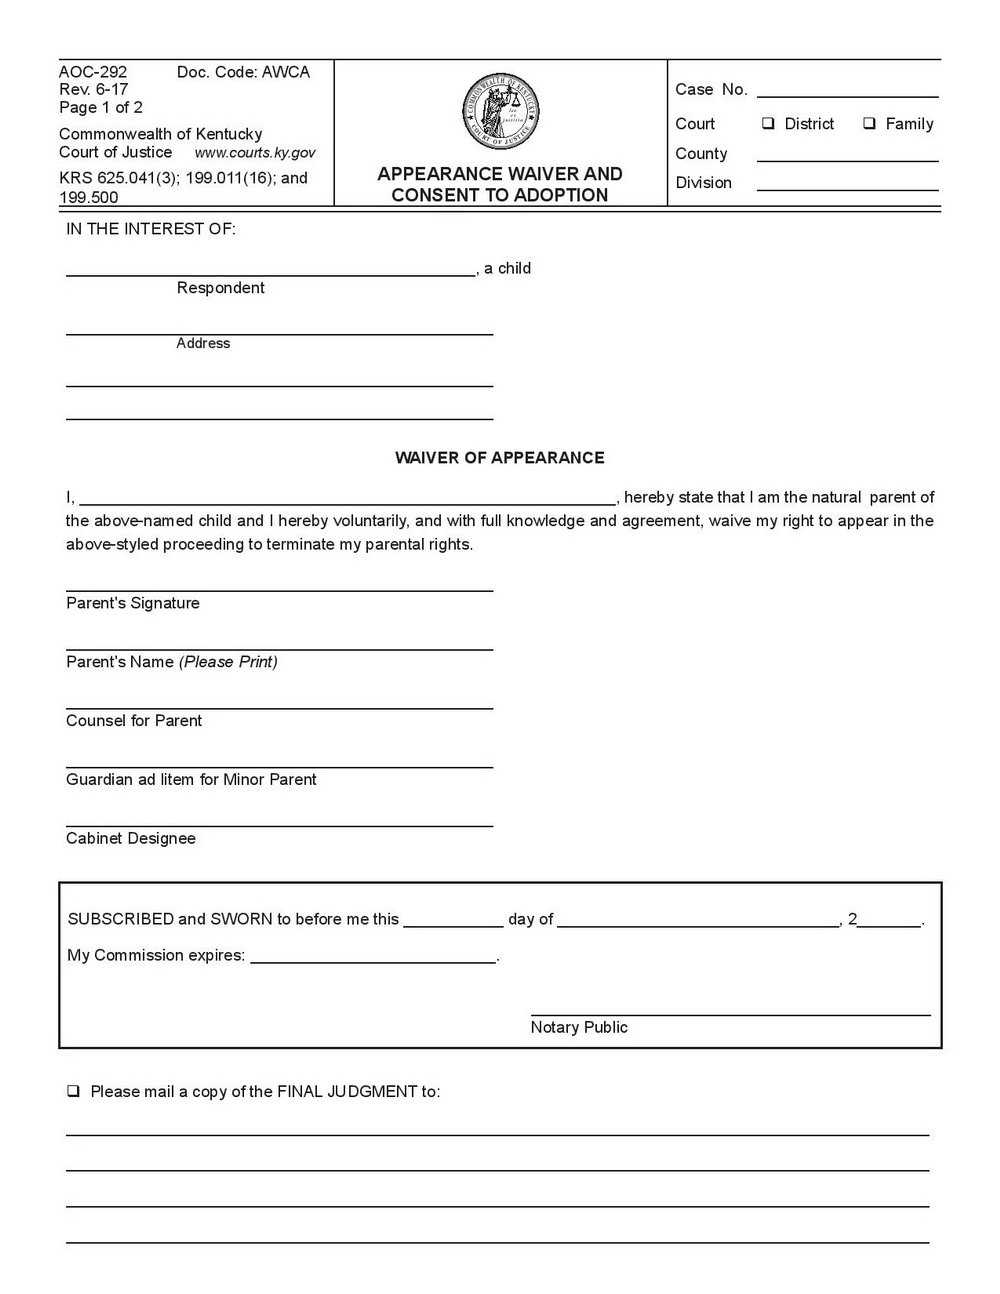 Indiana Stepparent Adoption Forms